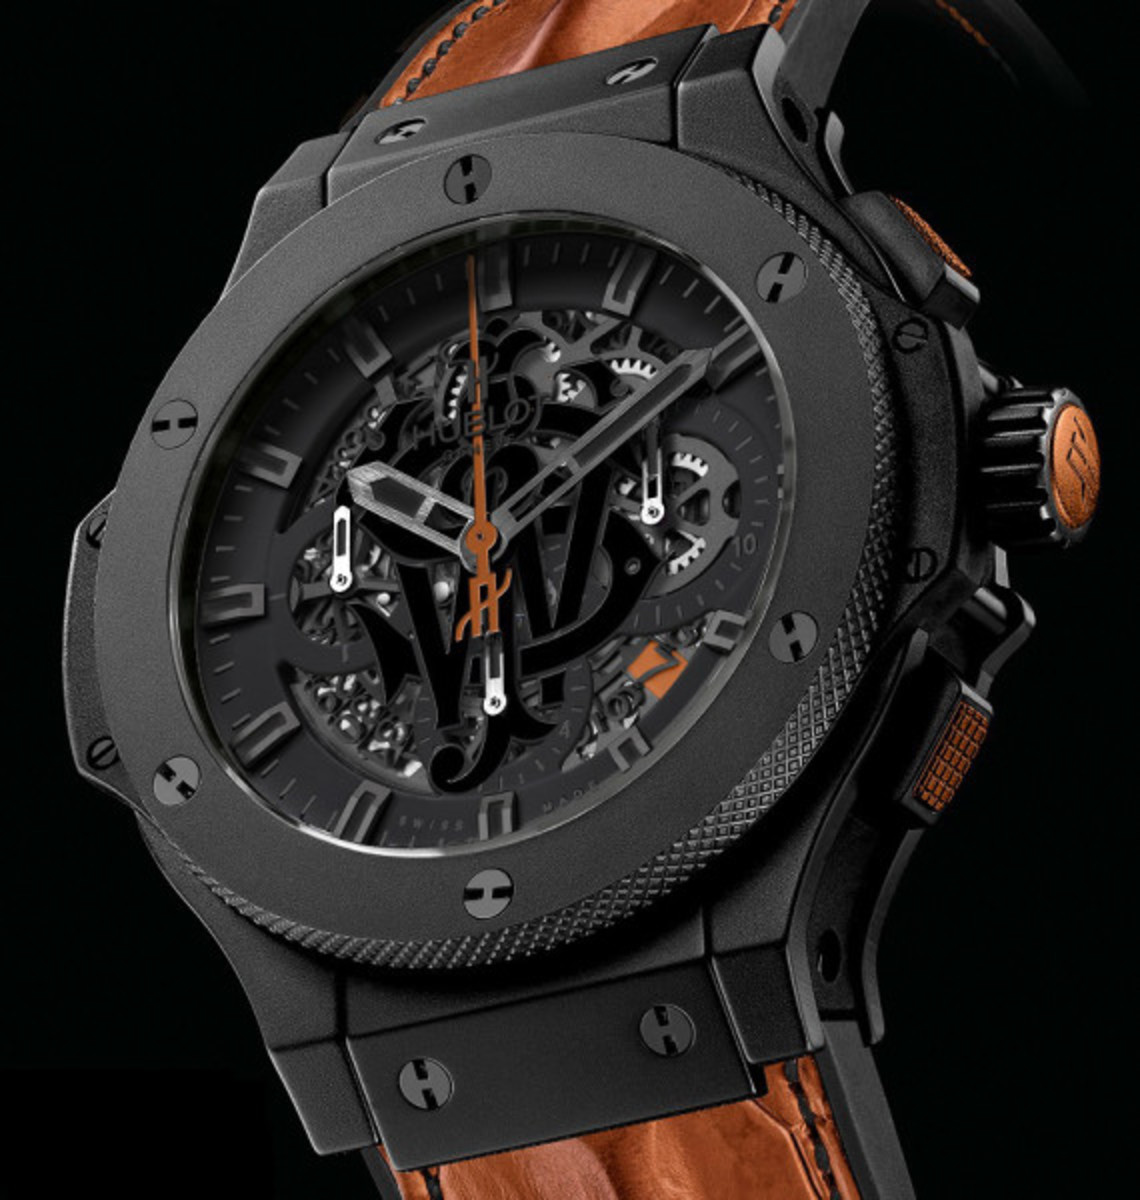 hublot-big-bang-aero-johnnie-walker-whisky-limited-edition-watch-01